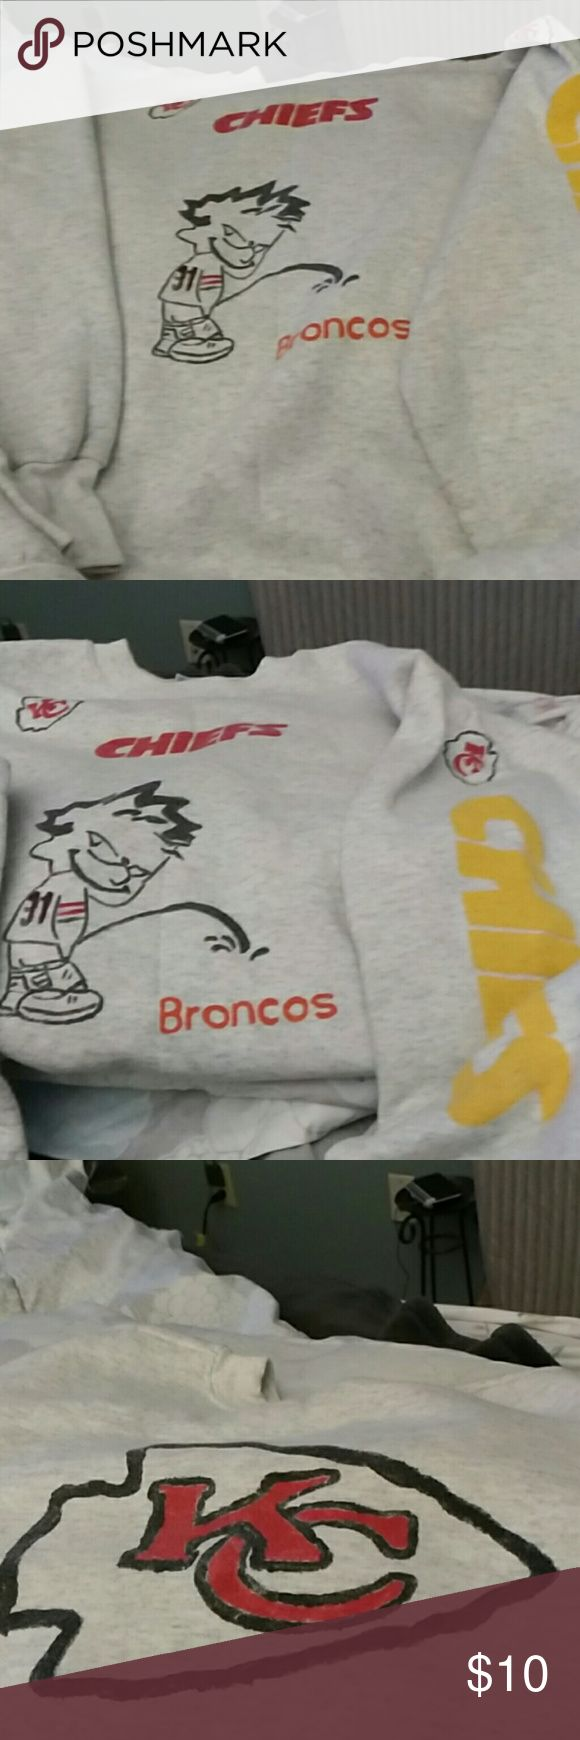 Adult handmade Chiefs sweatshirt Chiefs logo with person peeing on Broncos. Chiefs down sleeve. Arrowhead on back. Very cute. Made by my ex Mother-in-law. Tops Sweatshirts & Hoodies